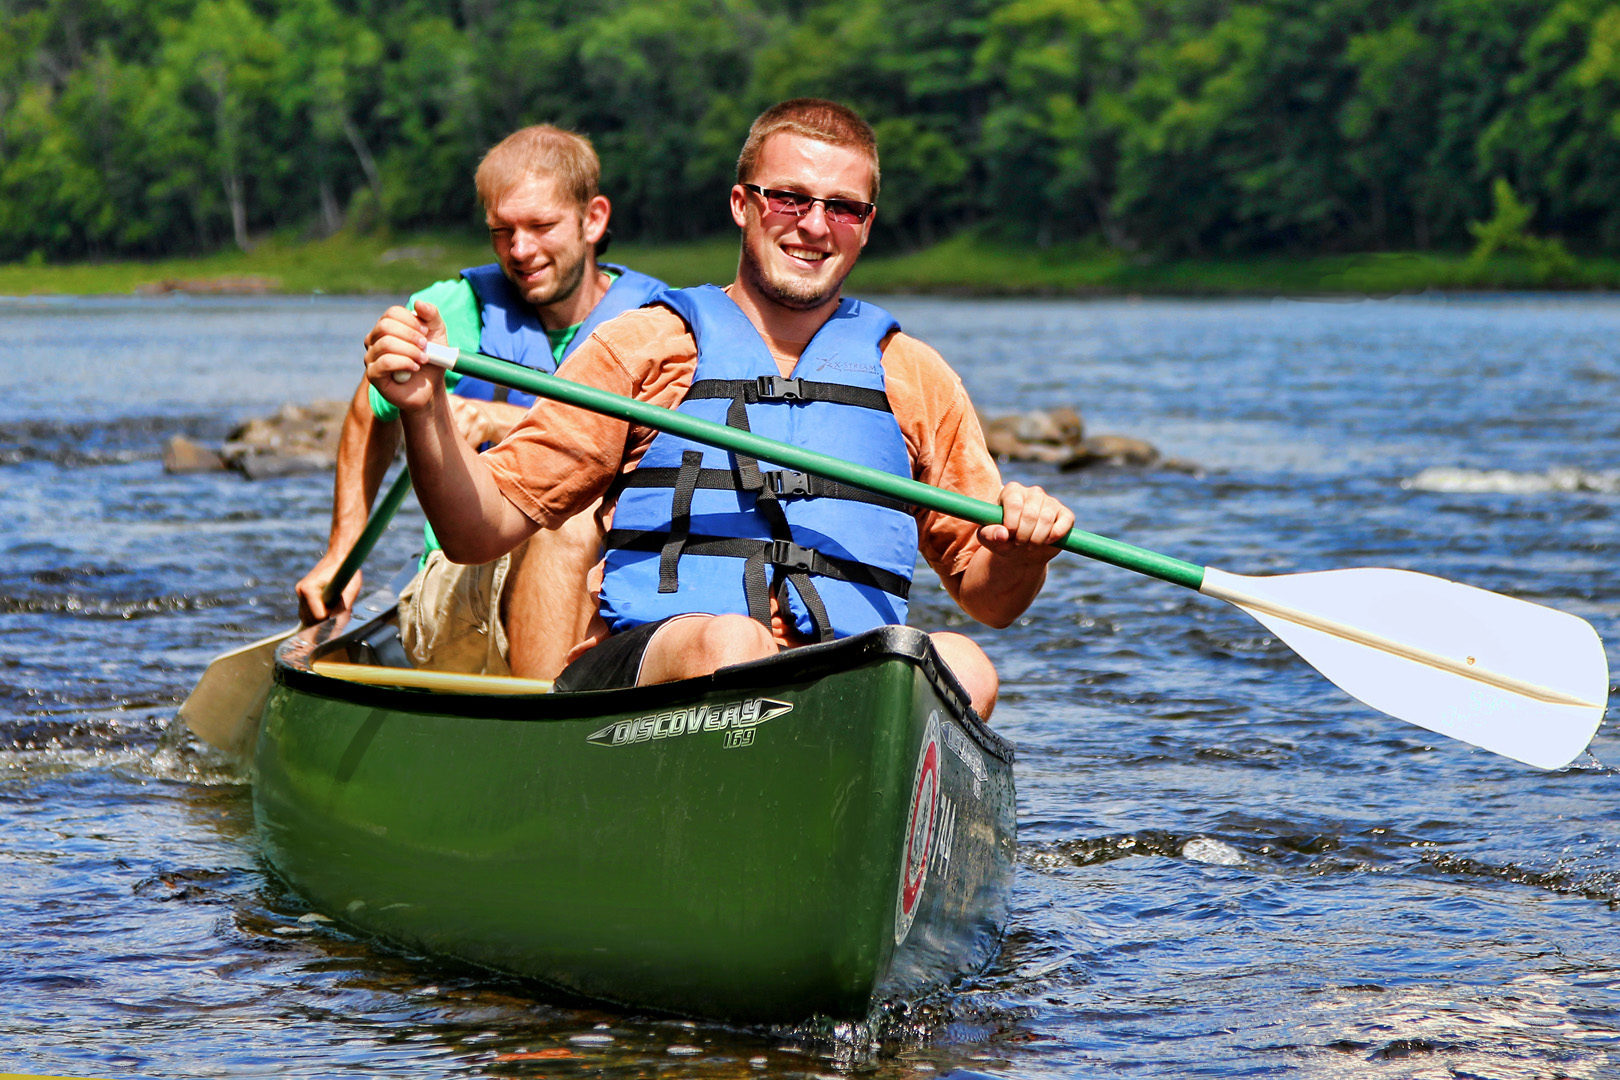 two guys enjoying their canoe ride on the river Indian Head Canoeing Rafting Kayaking Tubing Delaware River